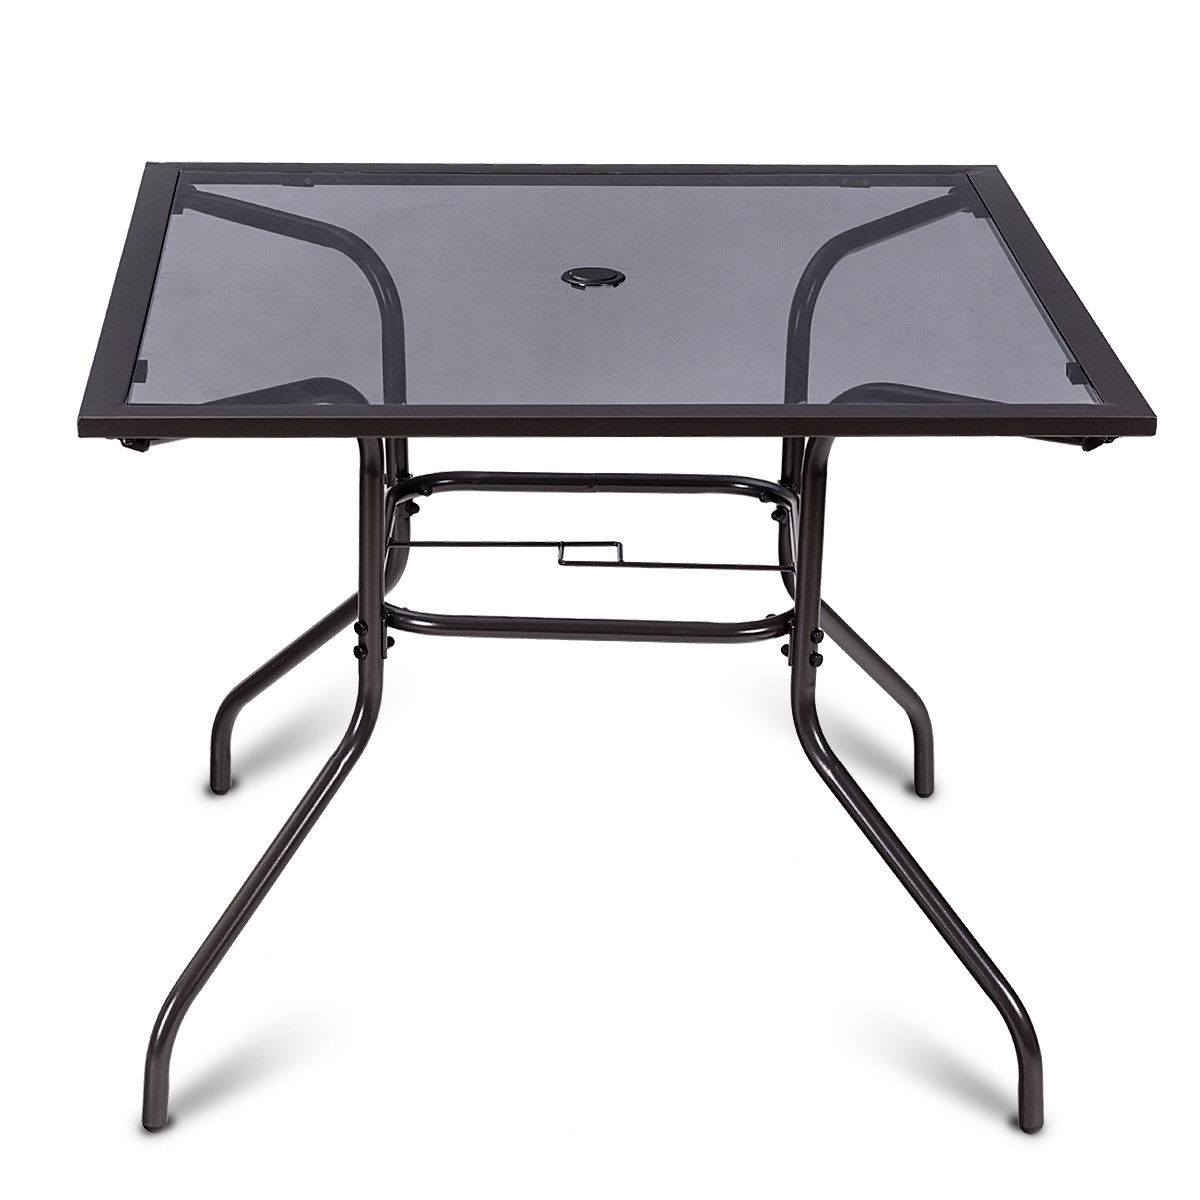 Costway 37 1/2'' Square Dining Table Glass Top Deck Patio Yard Garden Outdoor Furniture